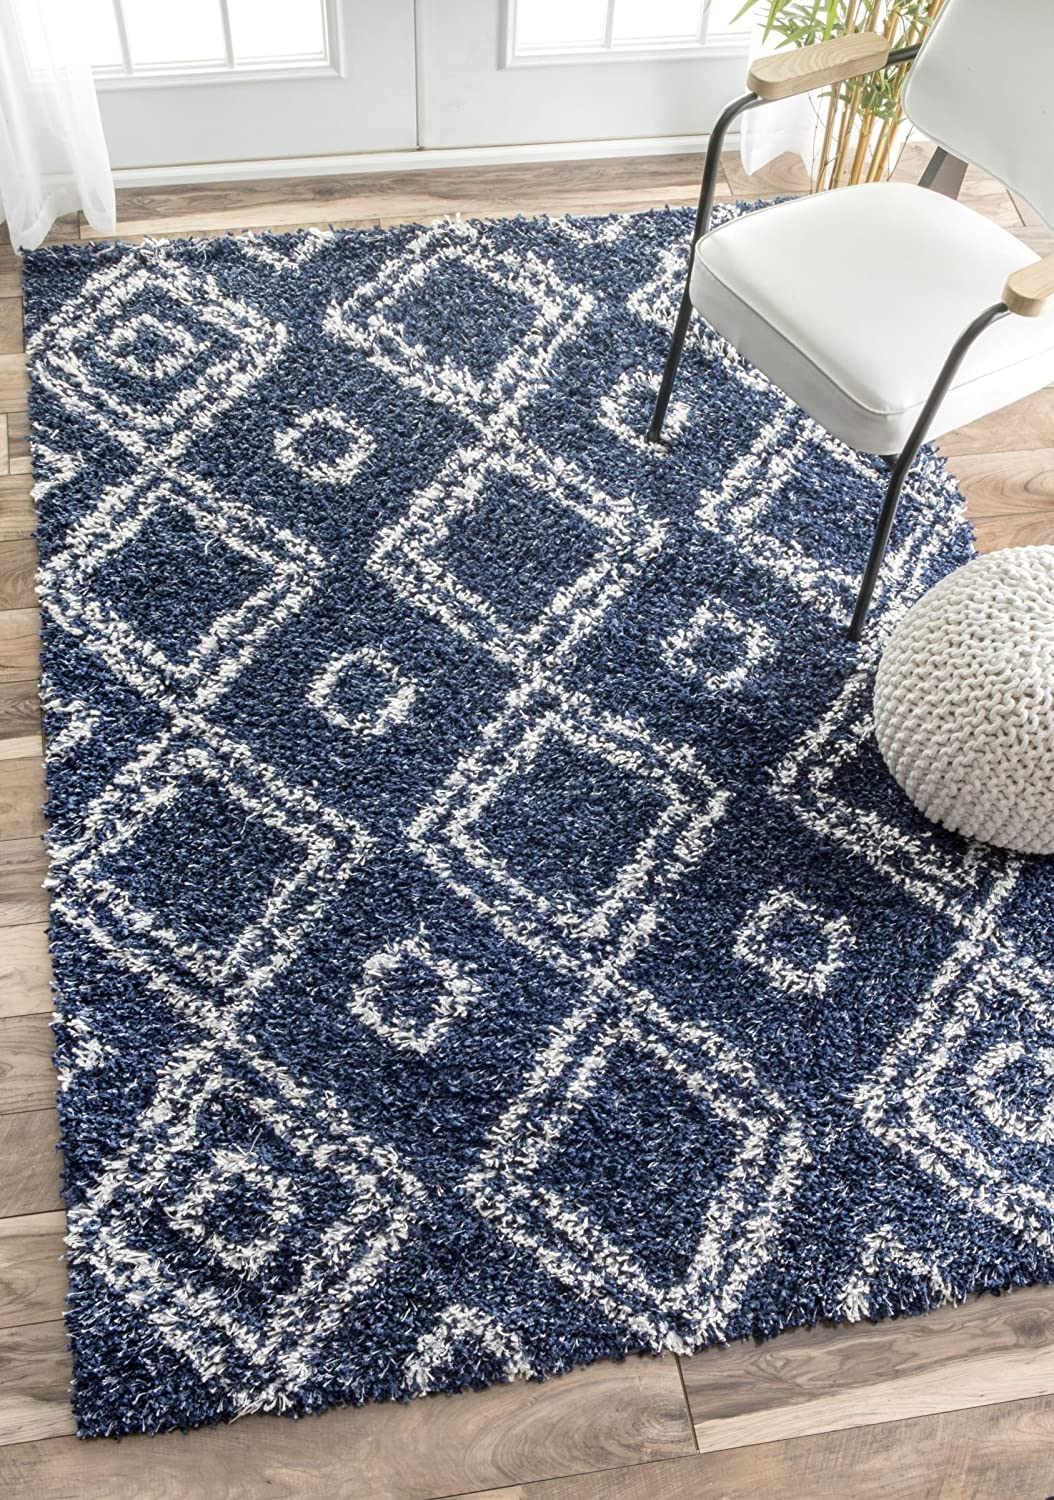 Blue Shag Rug Trellis Area Rug Blue Shag Navy 5x8 Lattice Carpet